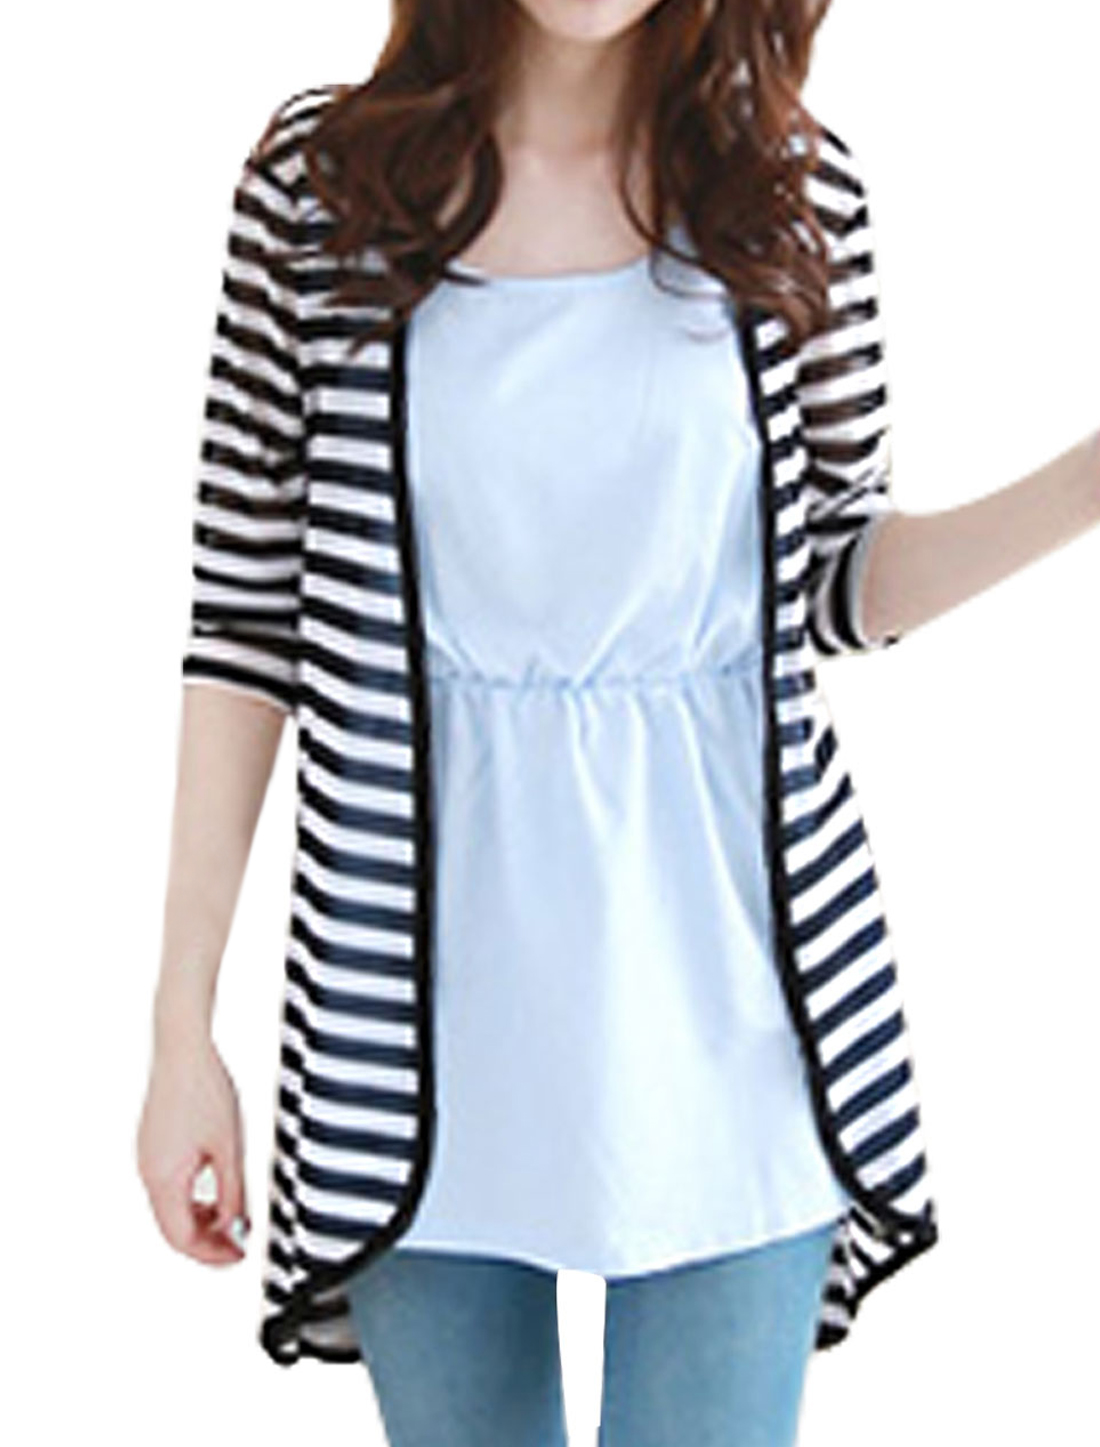 Lady Stripes Pattern Long Sleeve Semi Sheer Chiffon Cardigan S